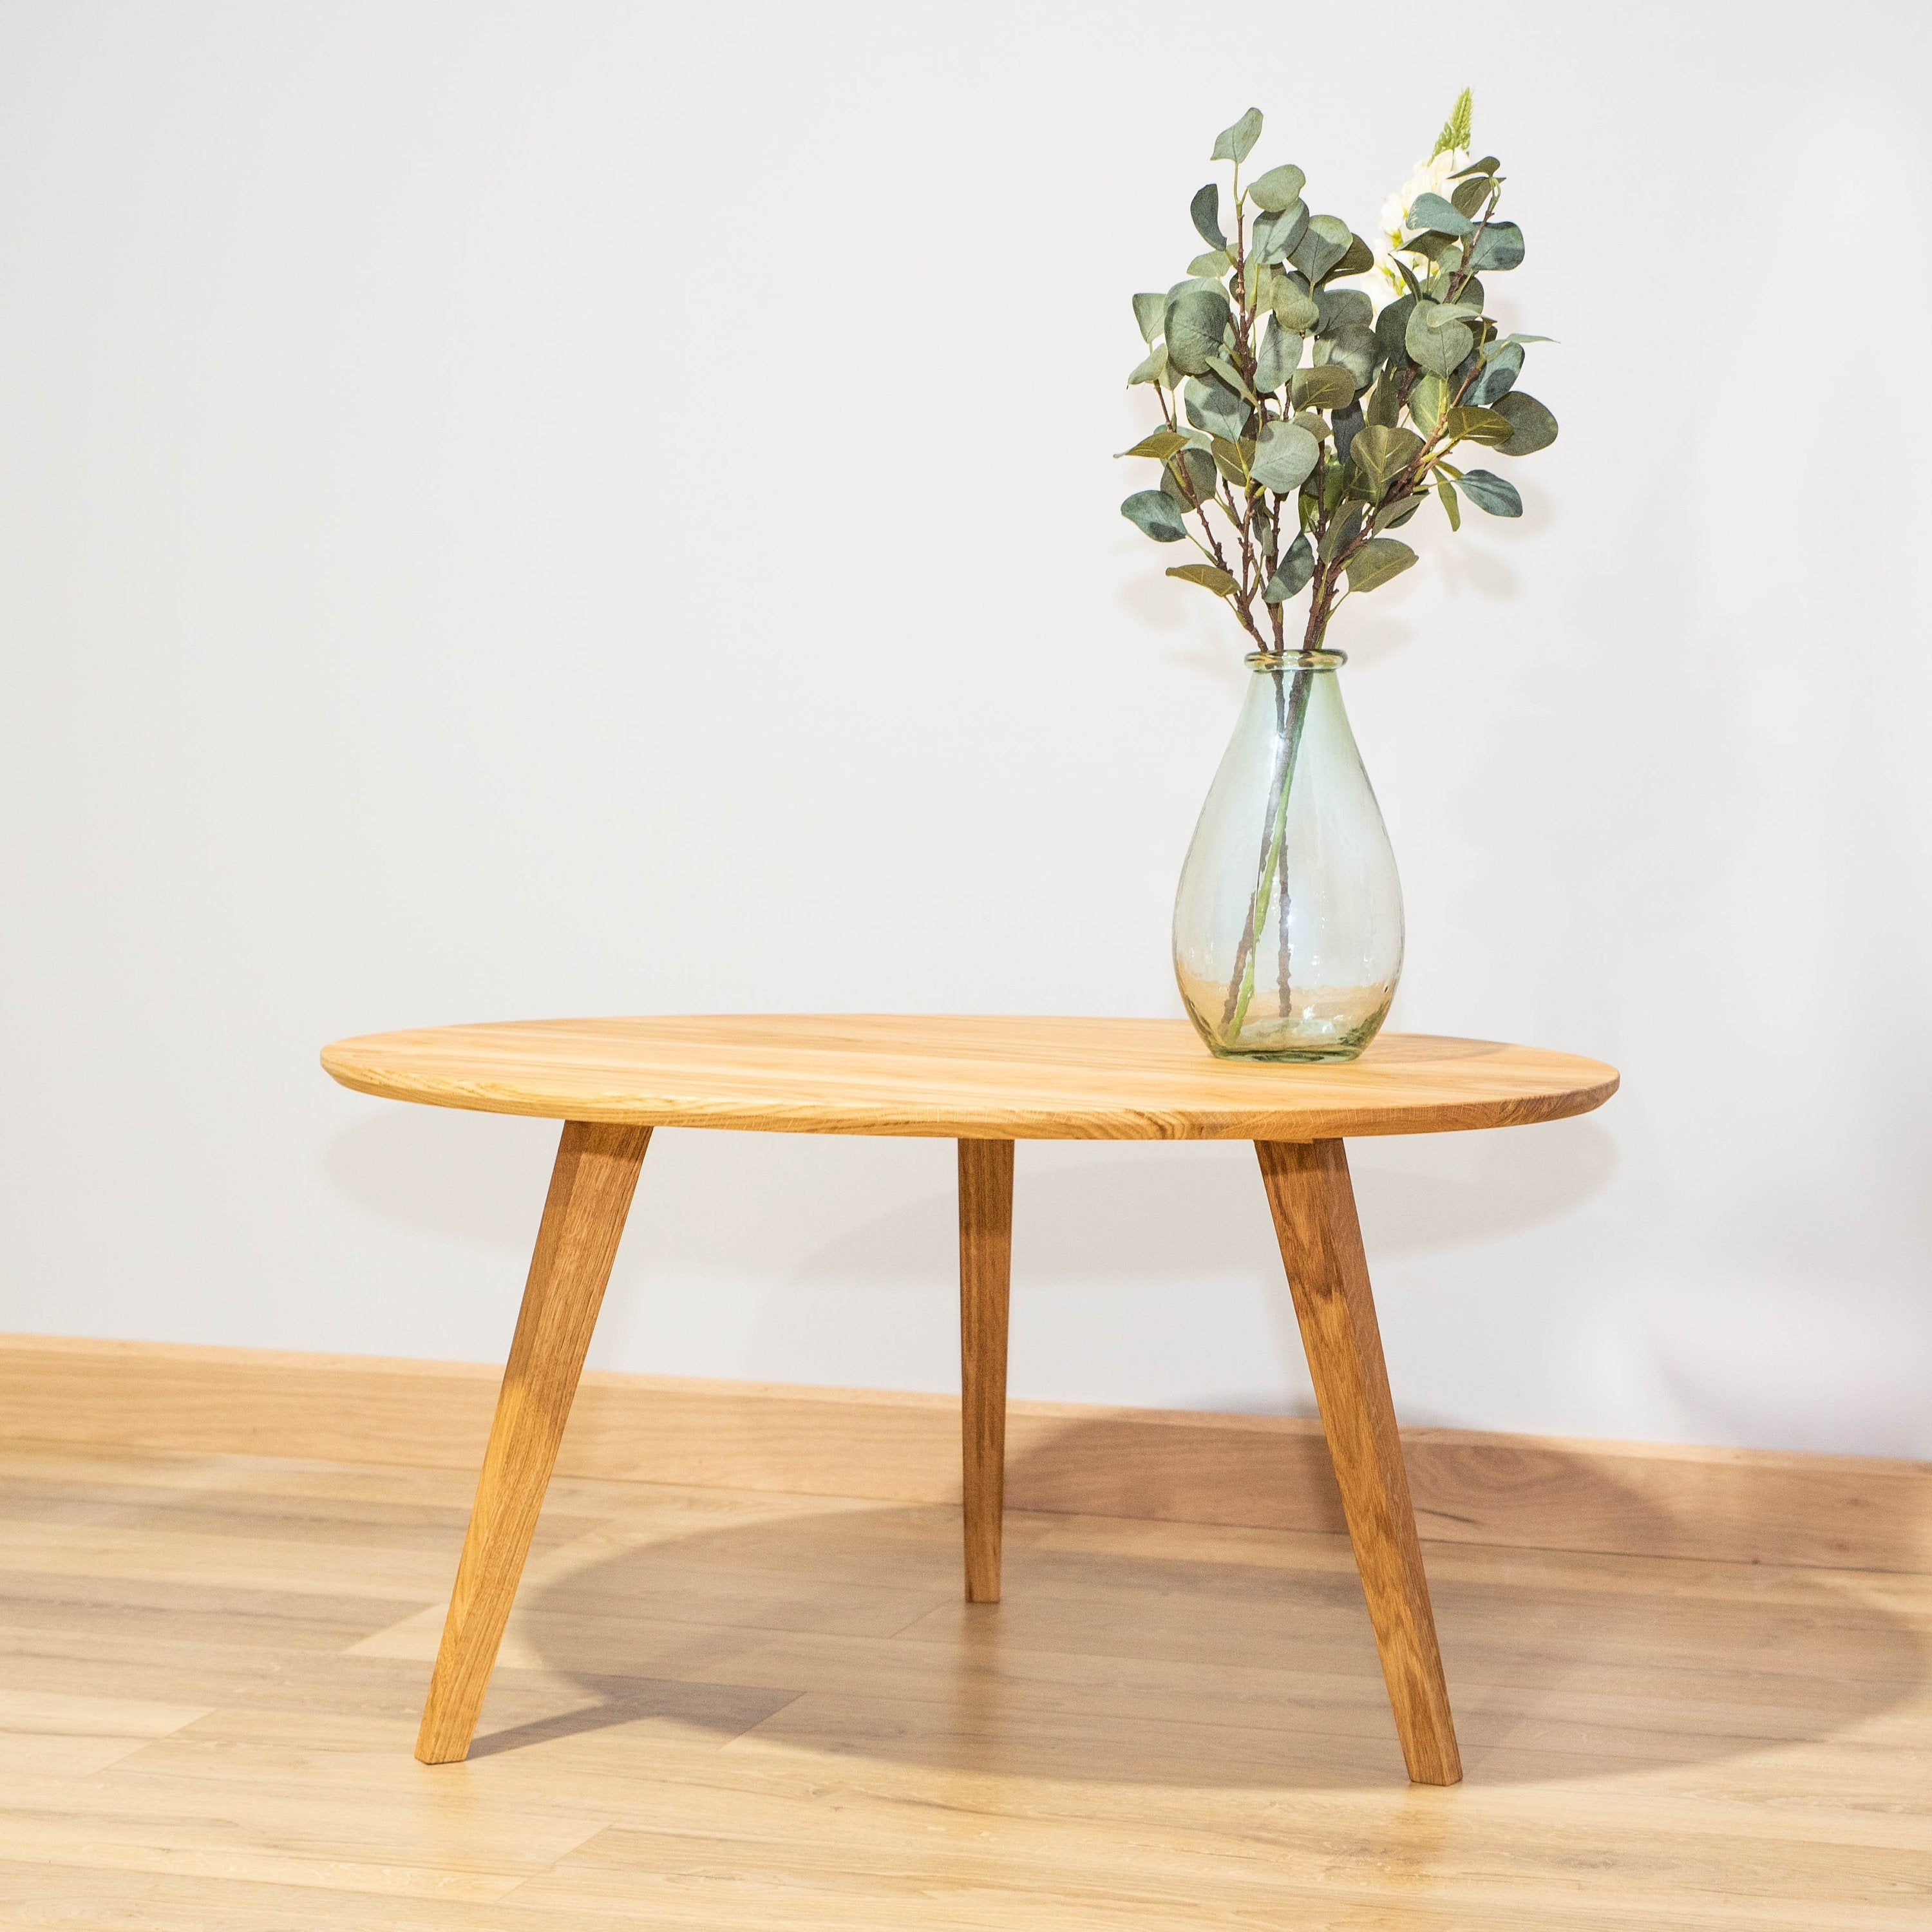 Round Oak Coffee Table Living Front Room Minimalist Etsy Coffee Table Oak Coffee Table Solid Oak Coffee Table [ 3000 x 3000 Pixel ]